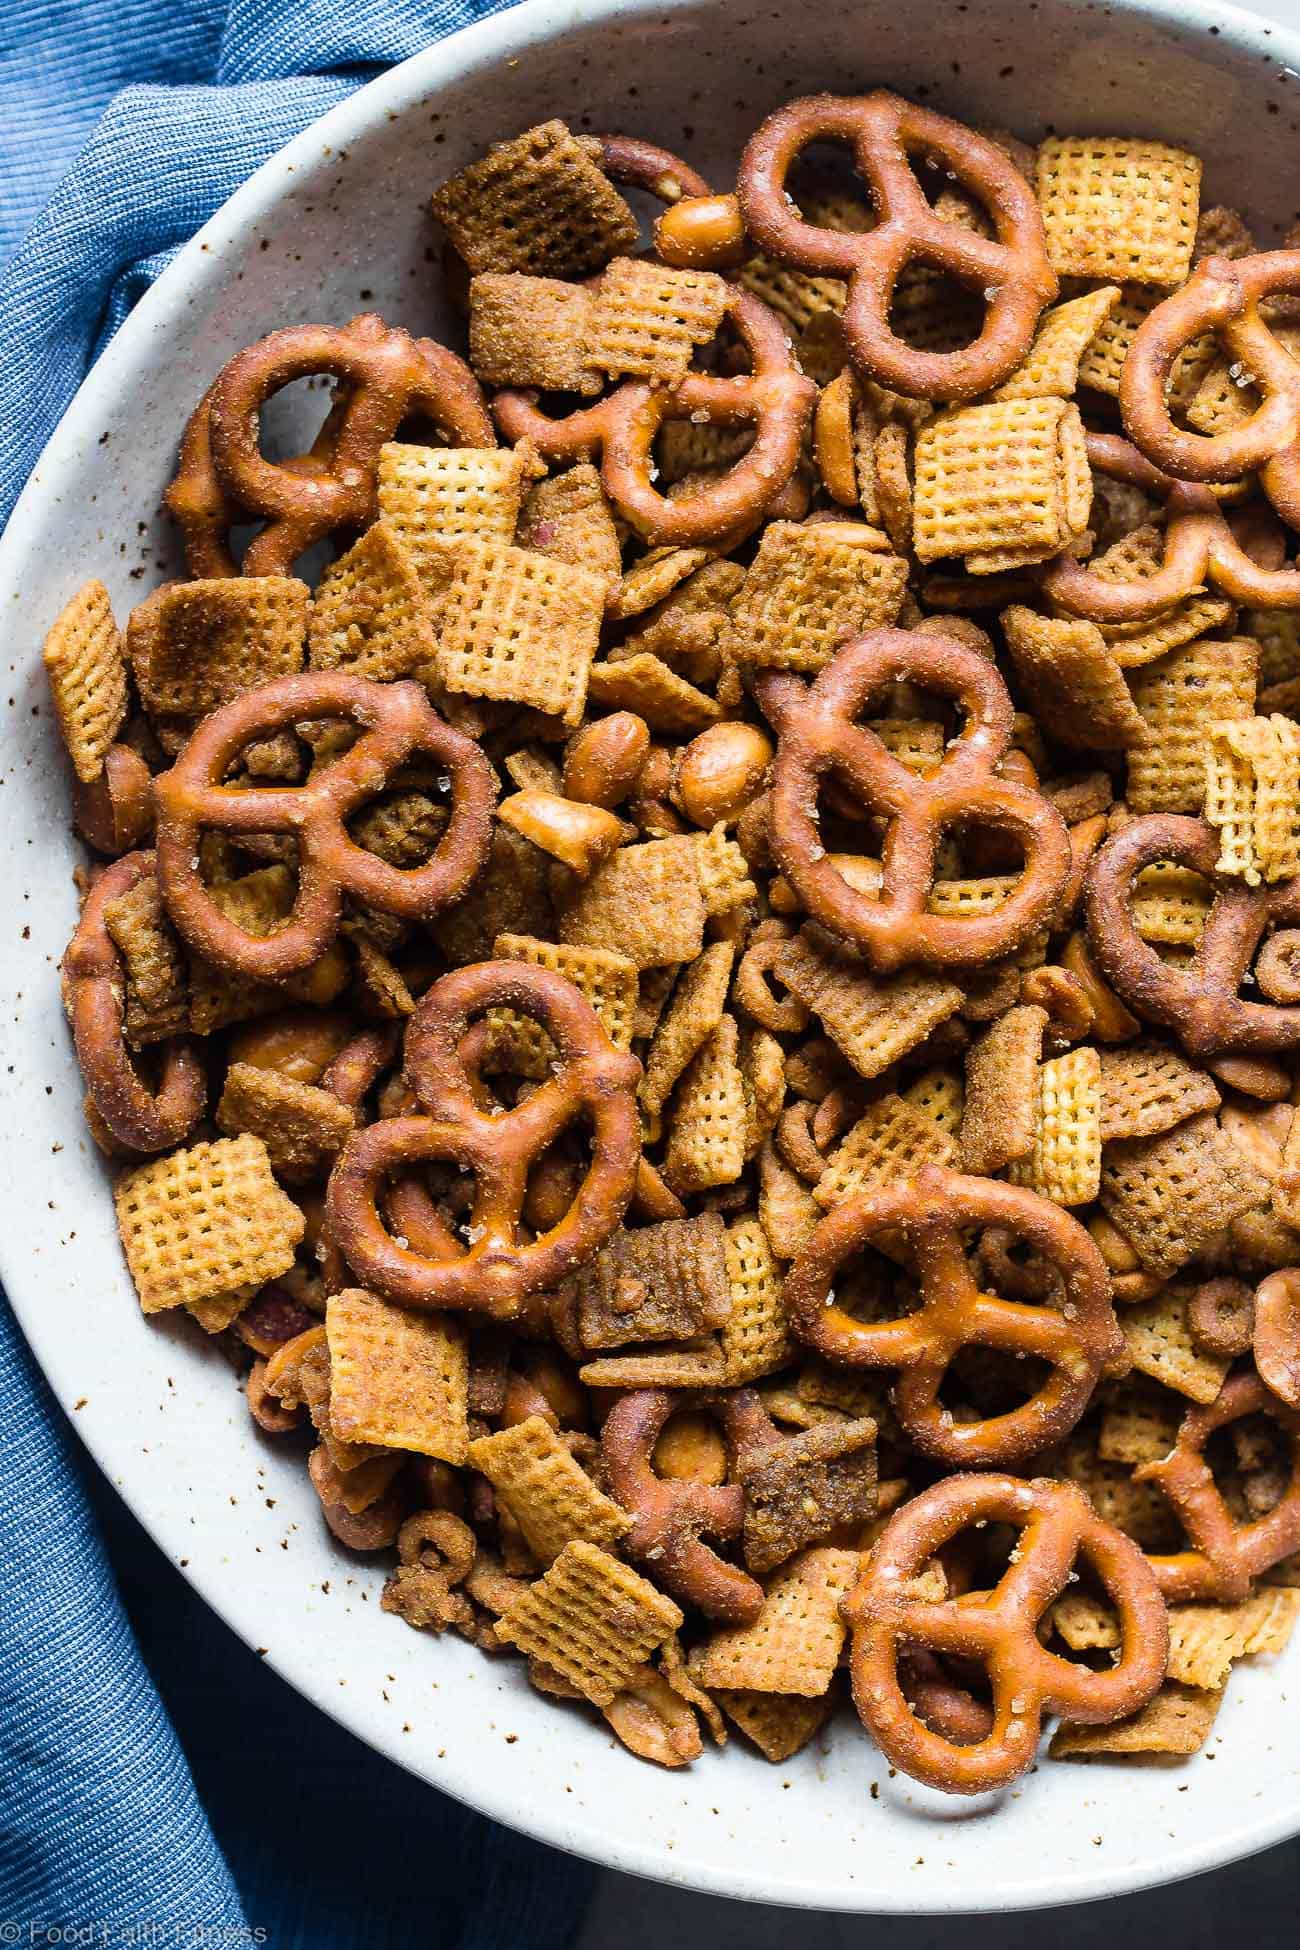 Hickory Honey Mustard Homemade Crock Pot Chex Mix -This dairy and gluten freeChex Mix is made in the slow cooker so it's super easy and hands off! It's got addicting smoky sweet flavors and is perfect for parties or movie nights! | Foodfaithfitness.com | @FoodFaithFit